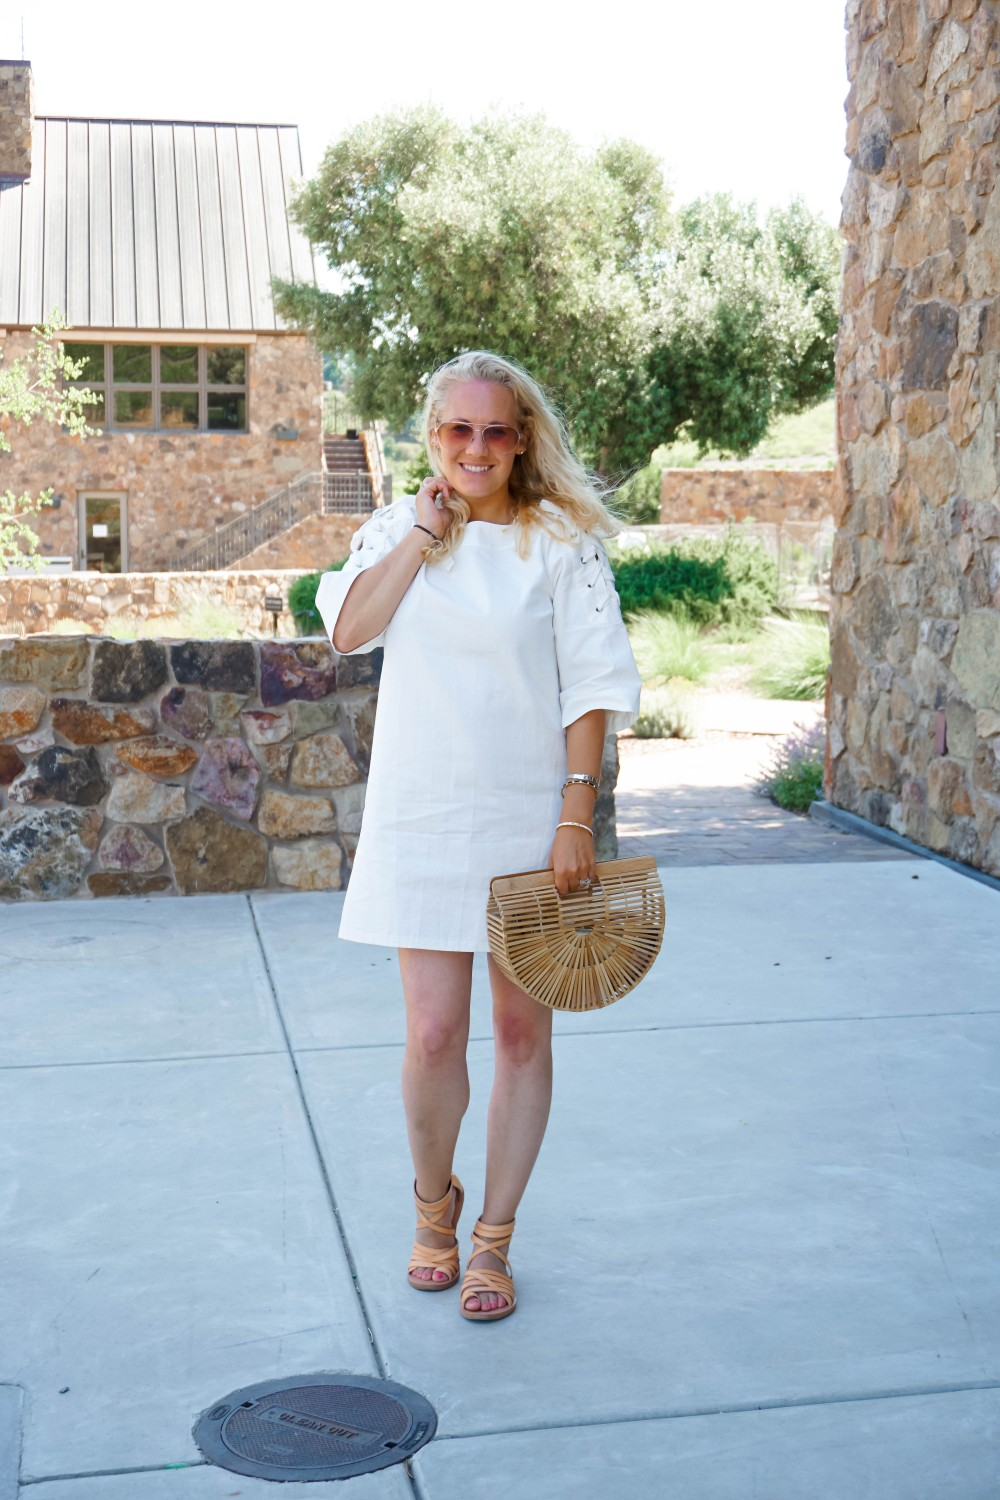 Lace-Up White Denim Dress-JOA Denim Dress-Summer Style-Bijou on the Park-Have Need Want-Outfit Inspiration-Mom Style 6